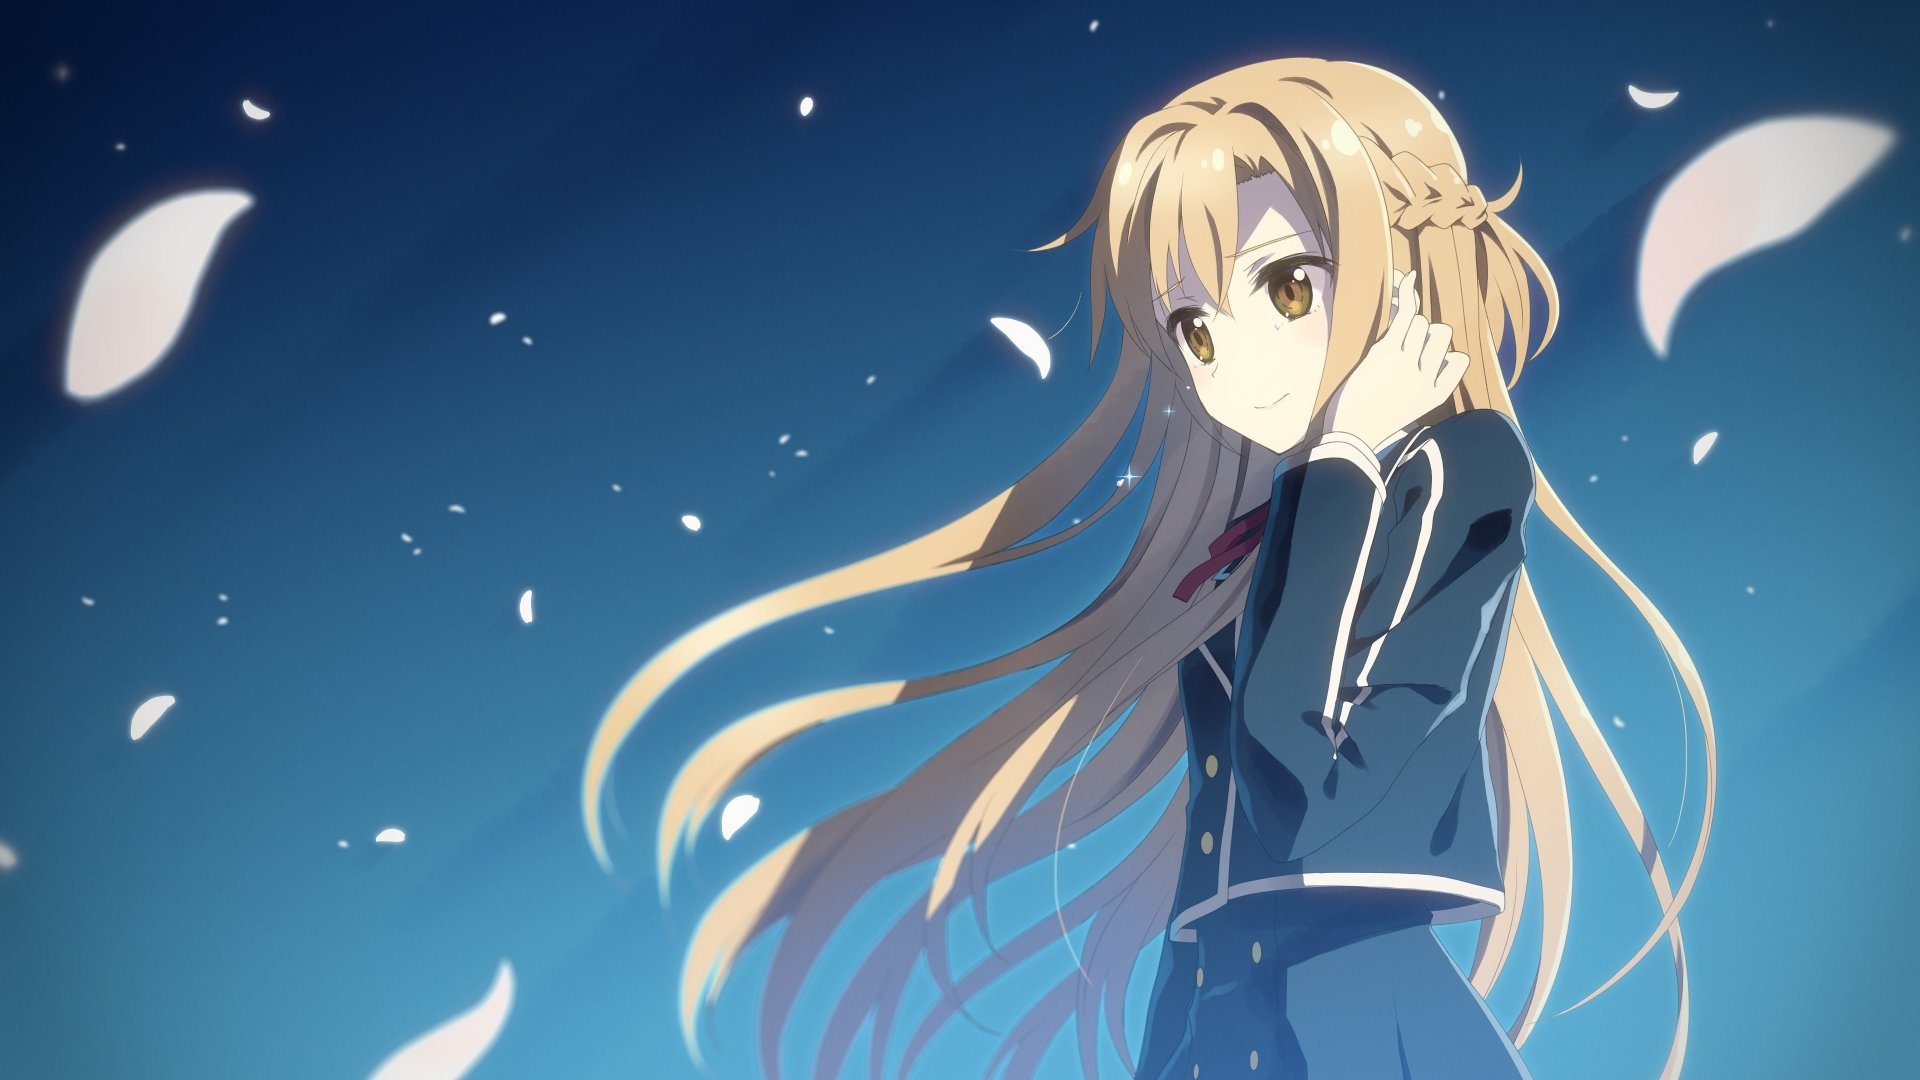 Anime - Sword Art Online  Asuna Yuuki Sword Art Online II Anime Long Hair Blonde Brown Eyes School Uniform Petal Wallpaper